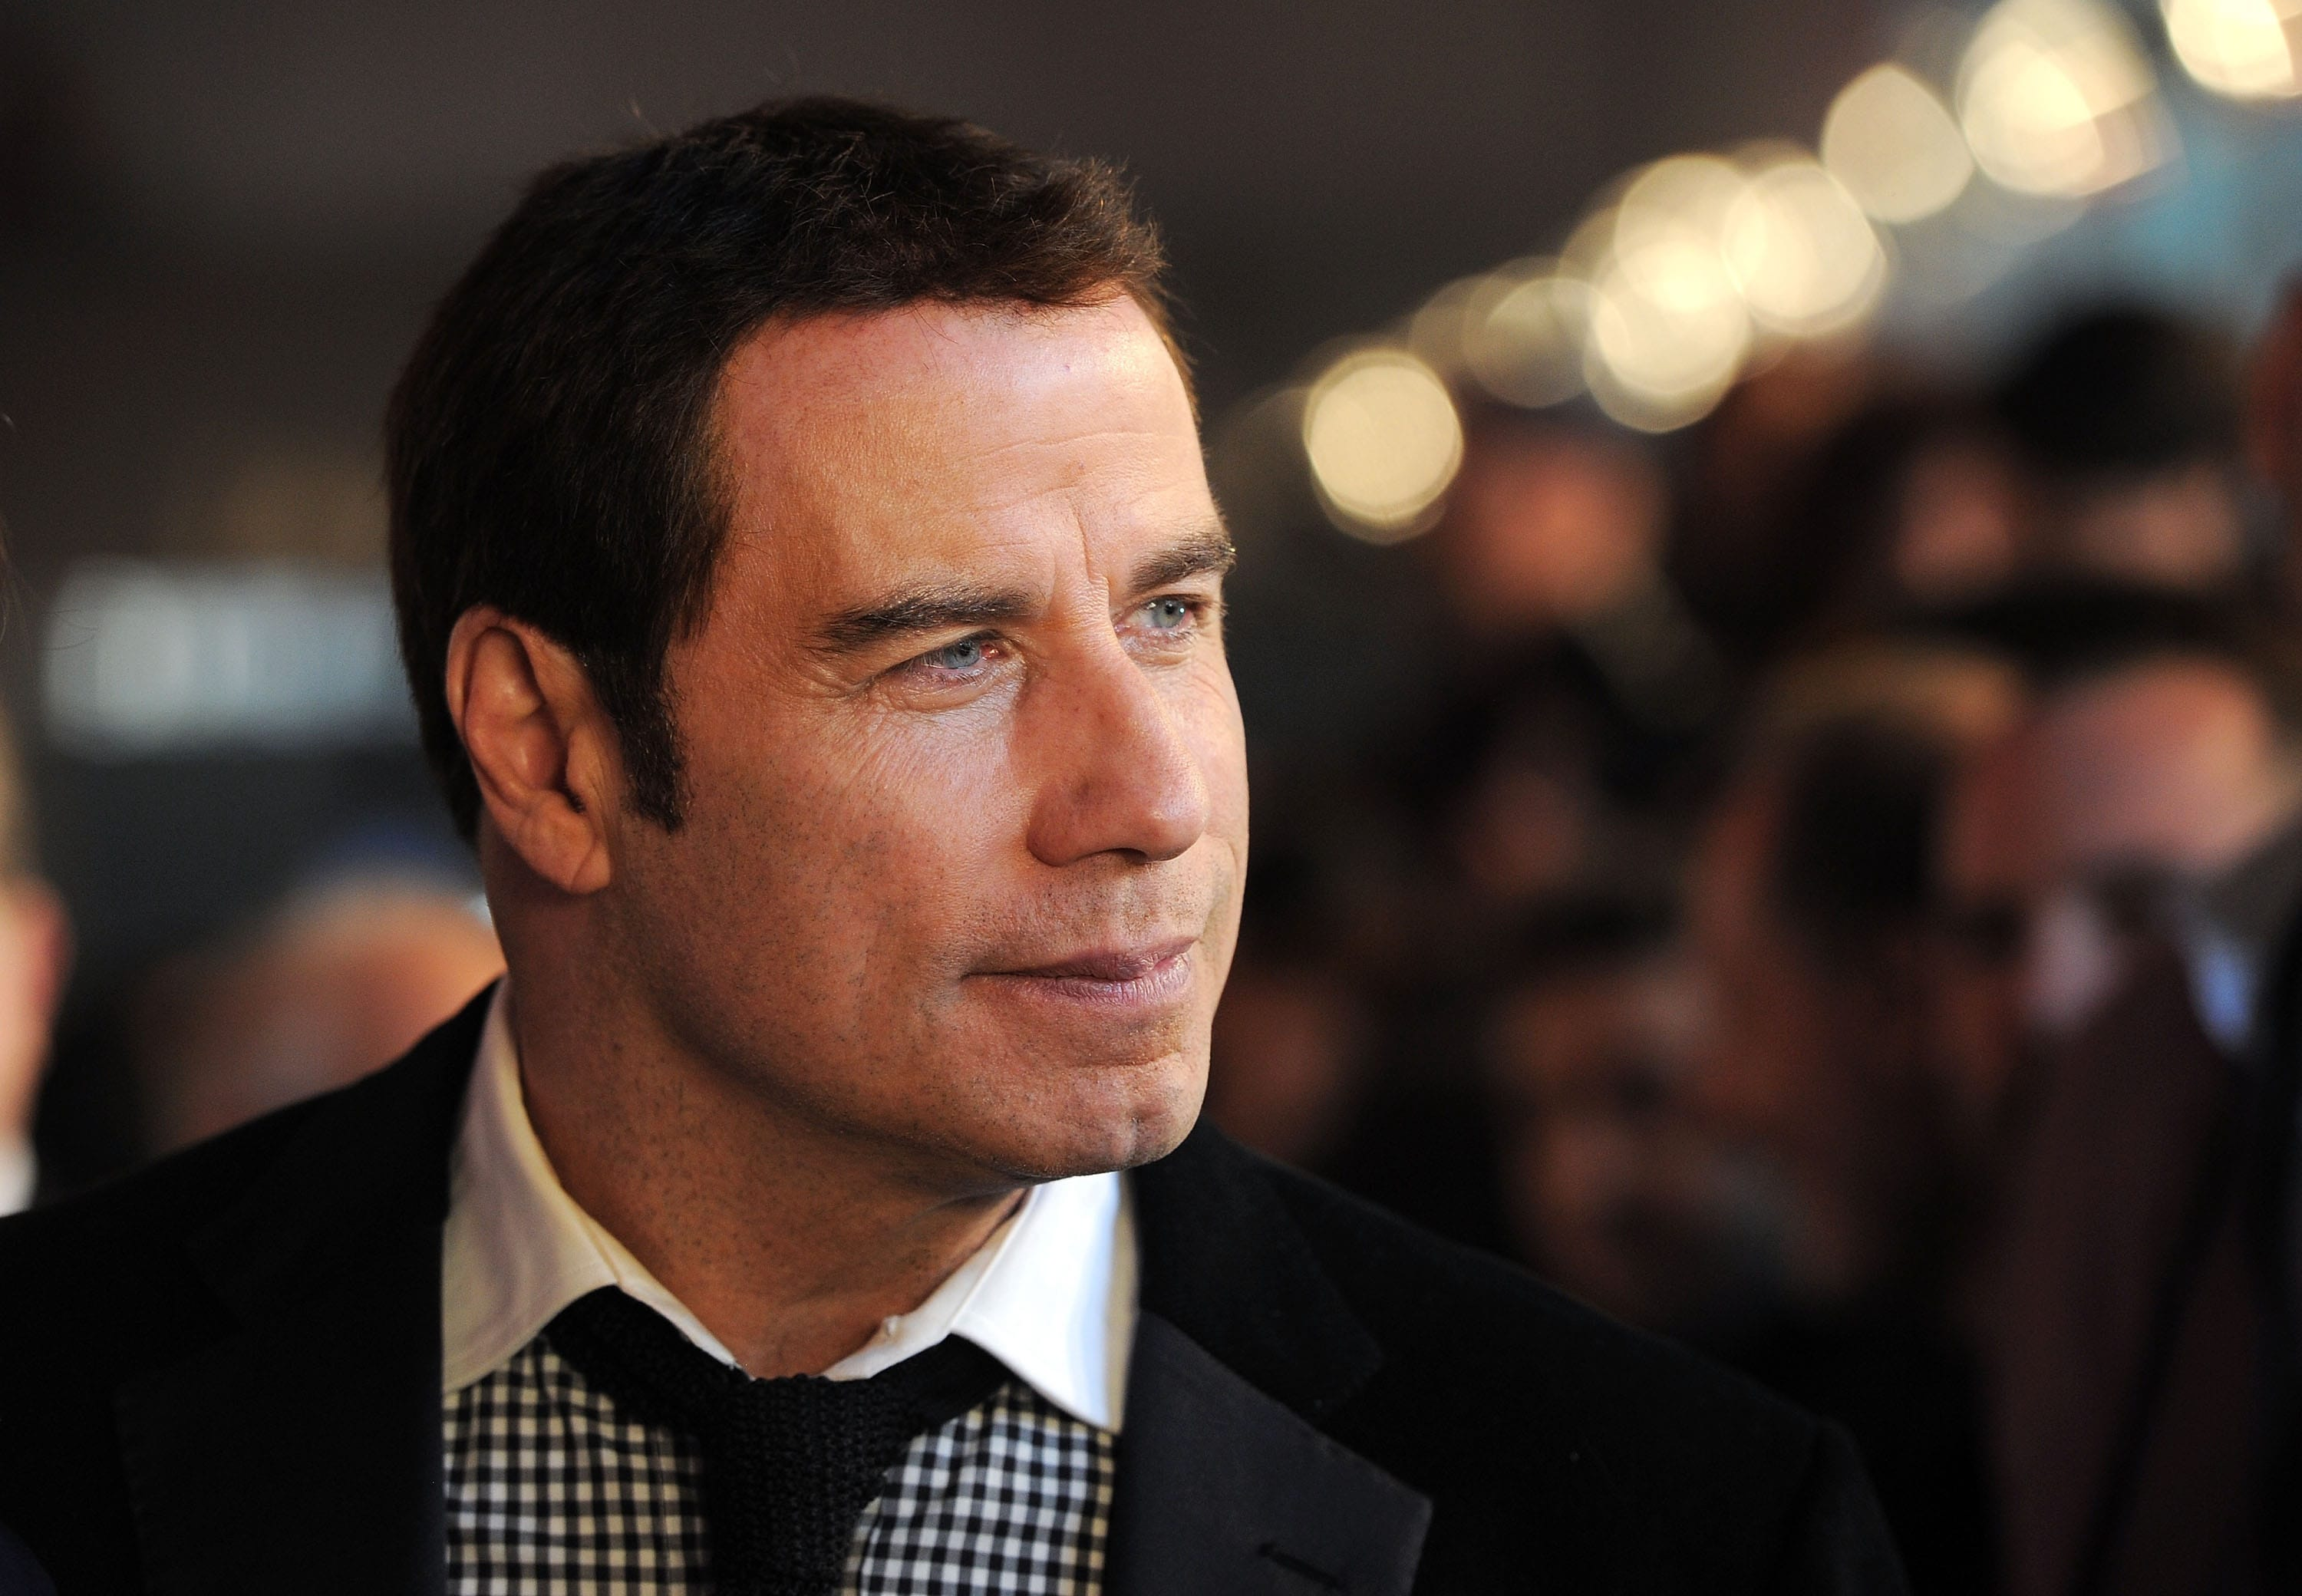 John Travolta Widescreen for desktop